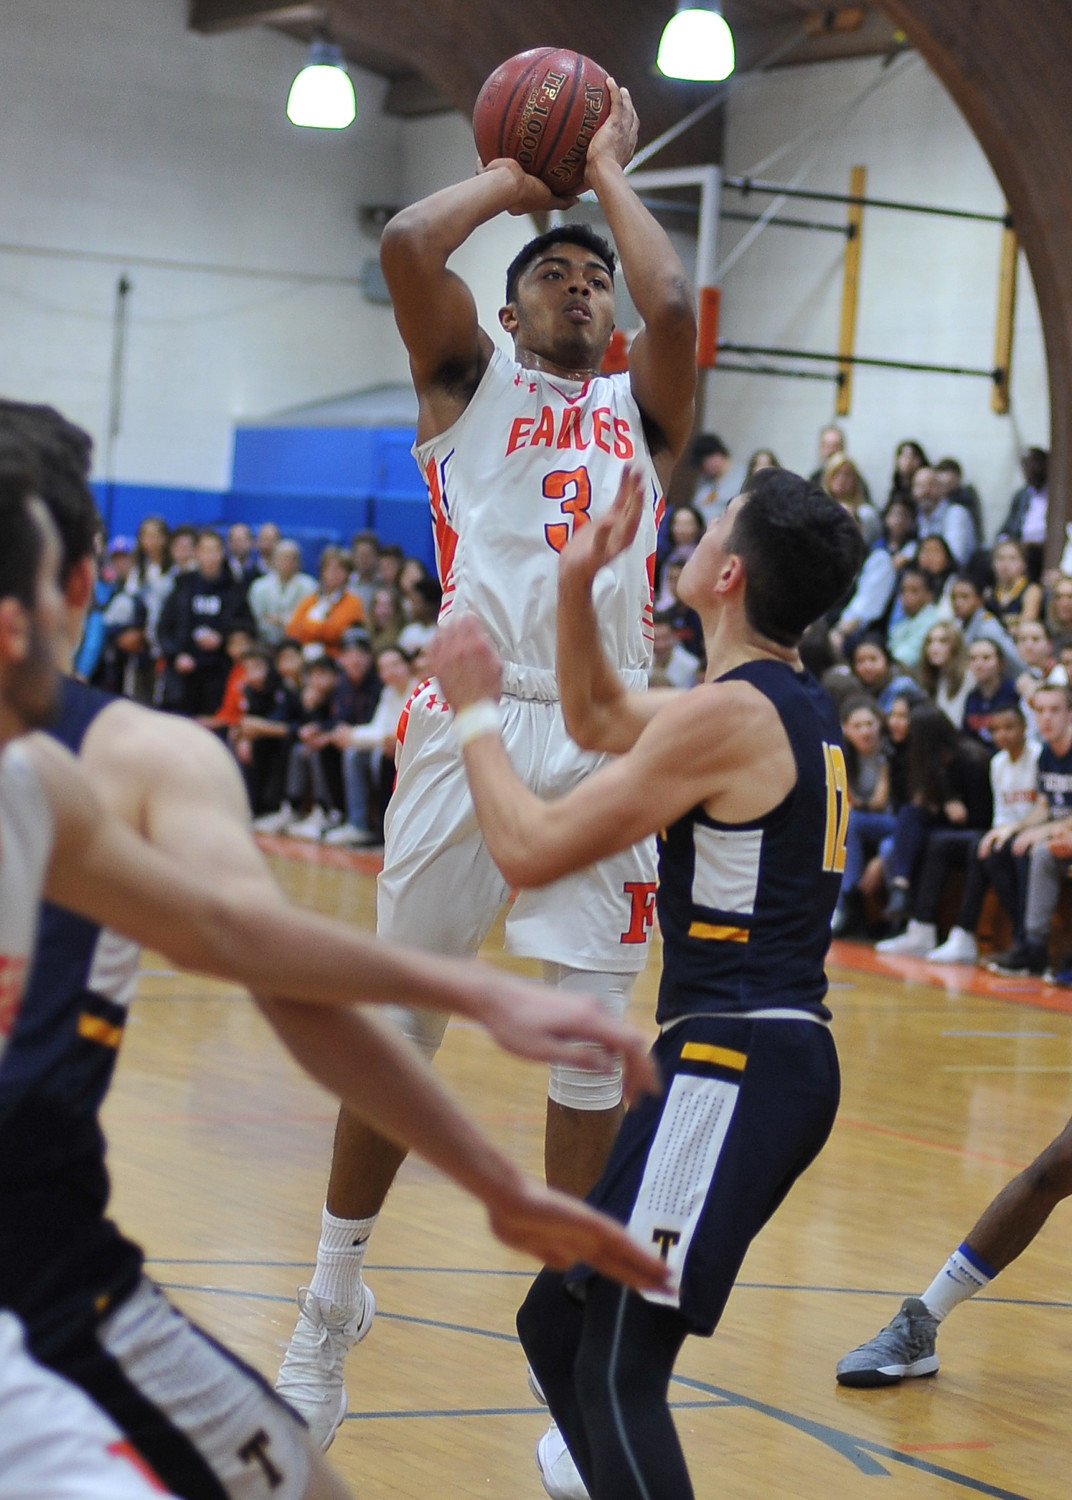 Fieldston's Jared Maharaj pulls up for a shot during his 25-point game last Friday in the Eagles' Ivy League victory over Trinity.